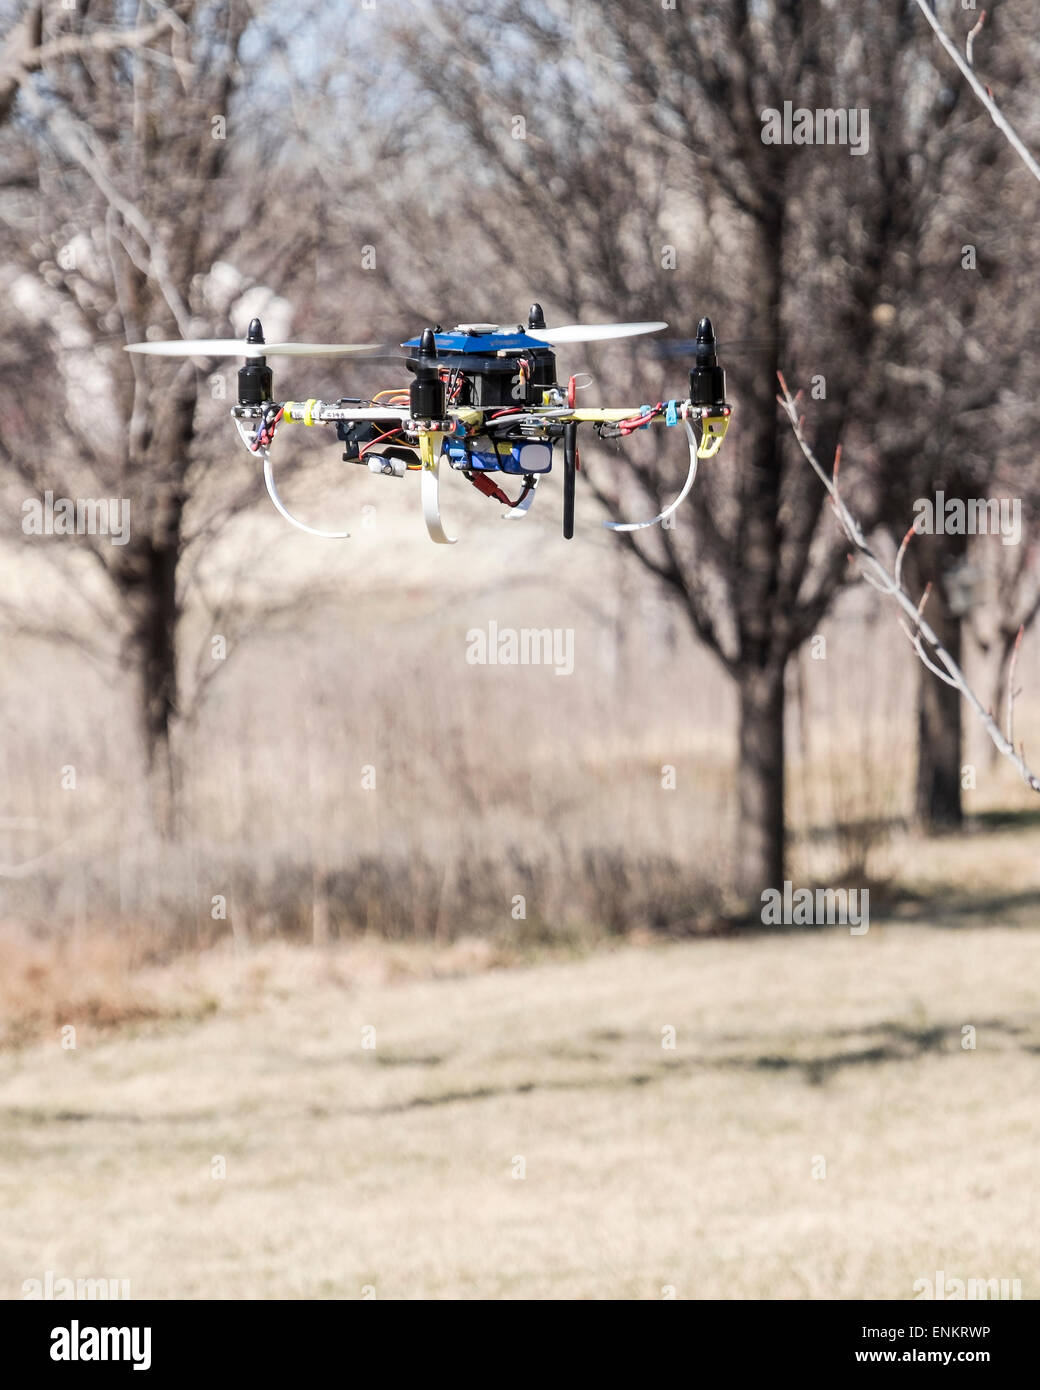 Remote Controlled Drones Stock Photos & Remote Controlled Drones